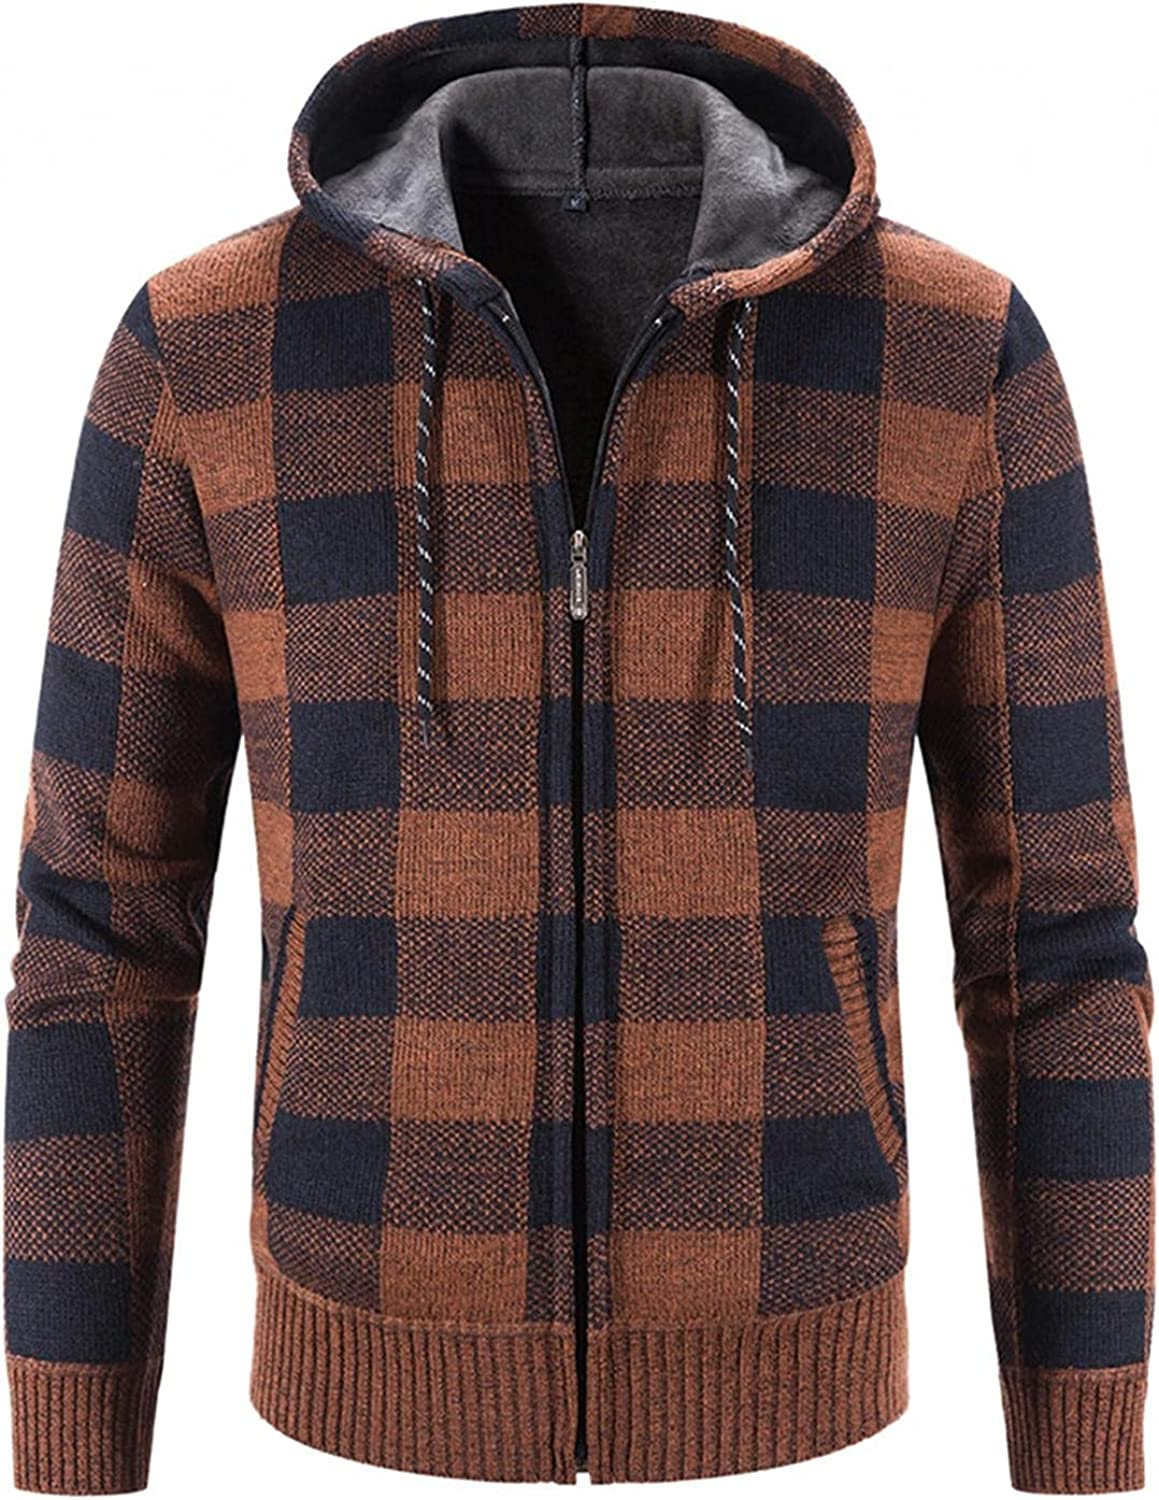 XUNFUN Men's Full Zip Plaid Hooded Cardigan Sweaters Winter Casual Thermal Knitted Sweater Jacket Coat with Pockets